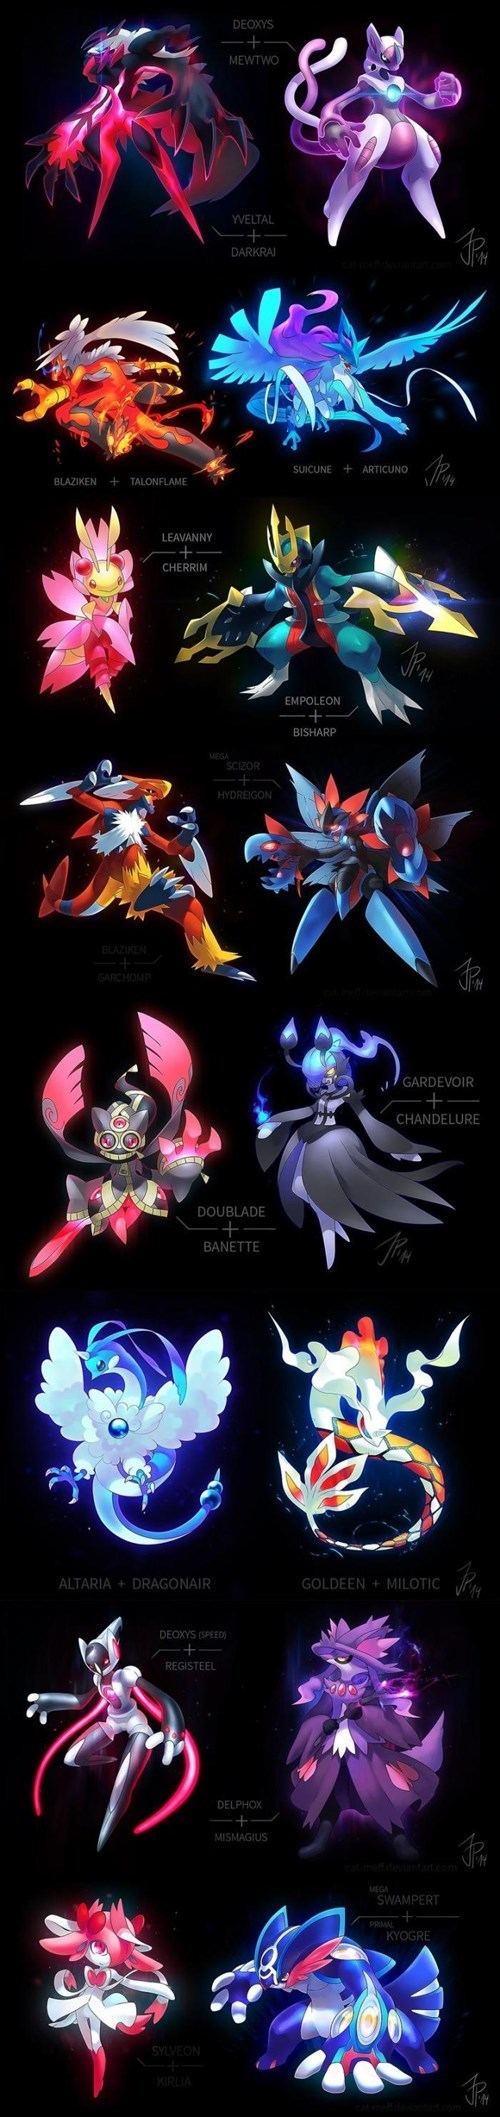 Pokémon,pokemon fusions